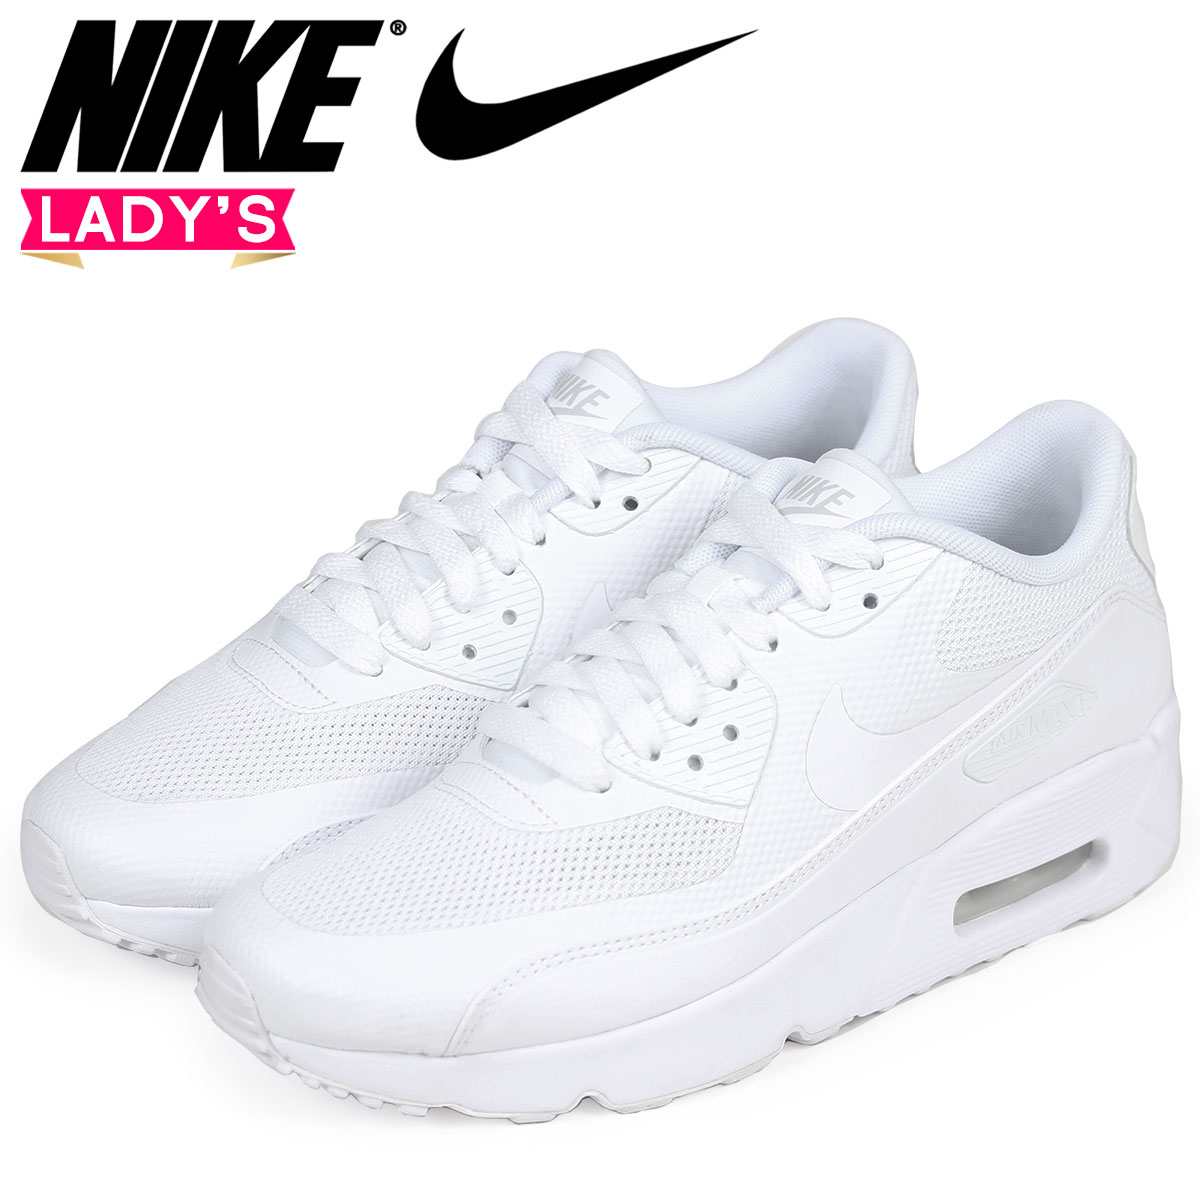 new style b9b6a 6128f Nike NIKE Air Max 90 ultra Lady s sneakers AIR MAX 90 ULTRA ESS 2.0 GS  869,950 ...